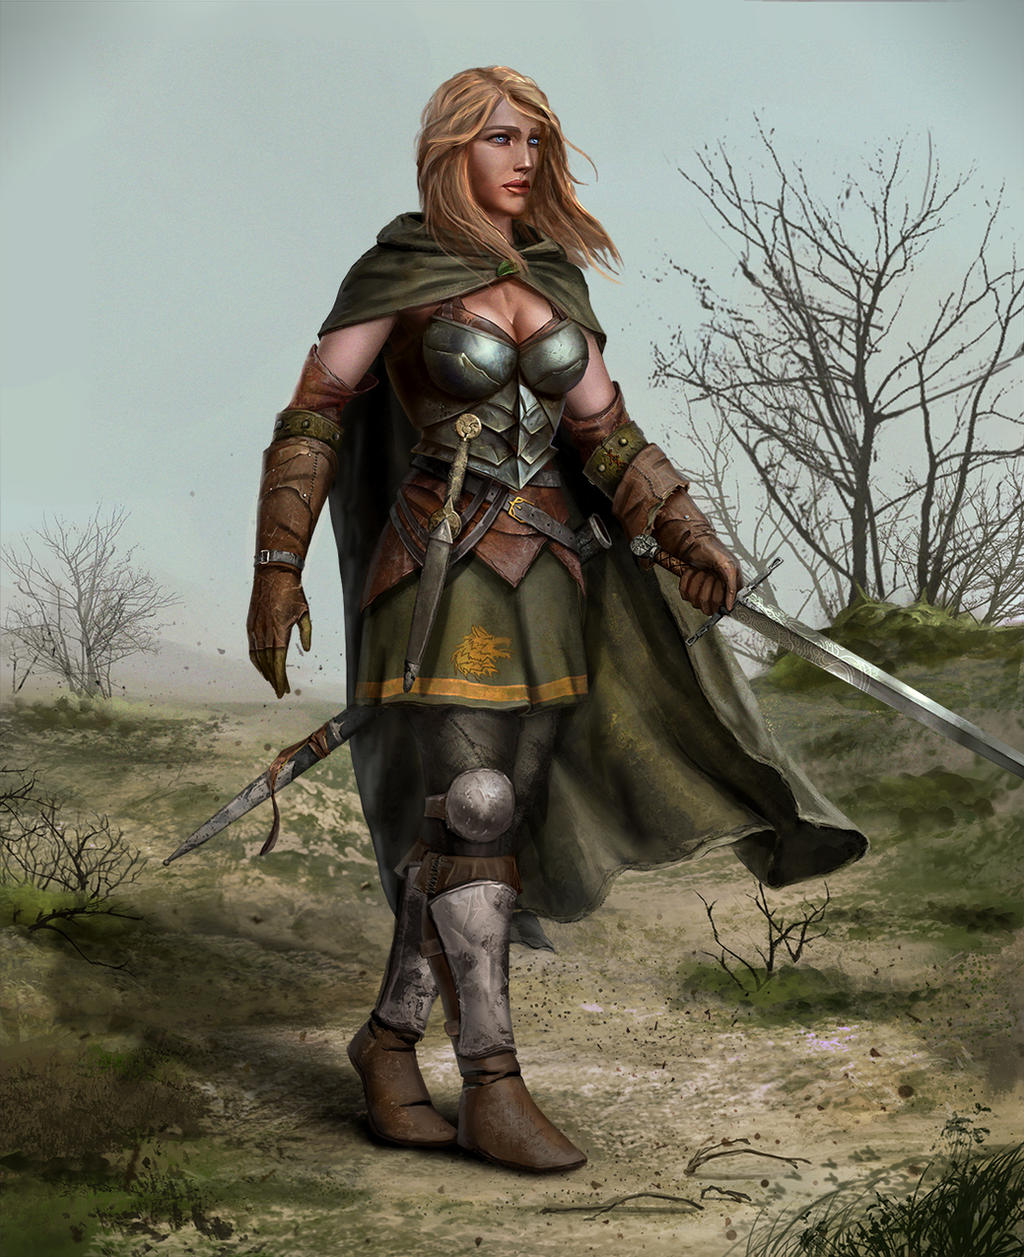 the woman warrior by Icemacob on DeviantArt